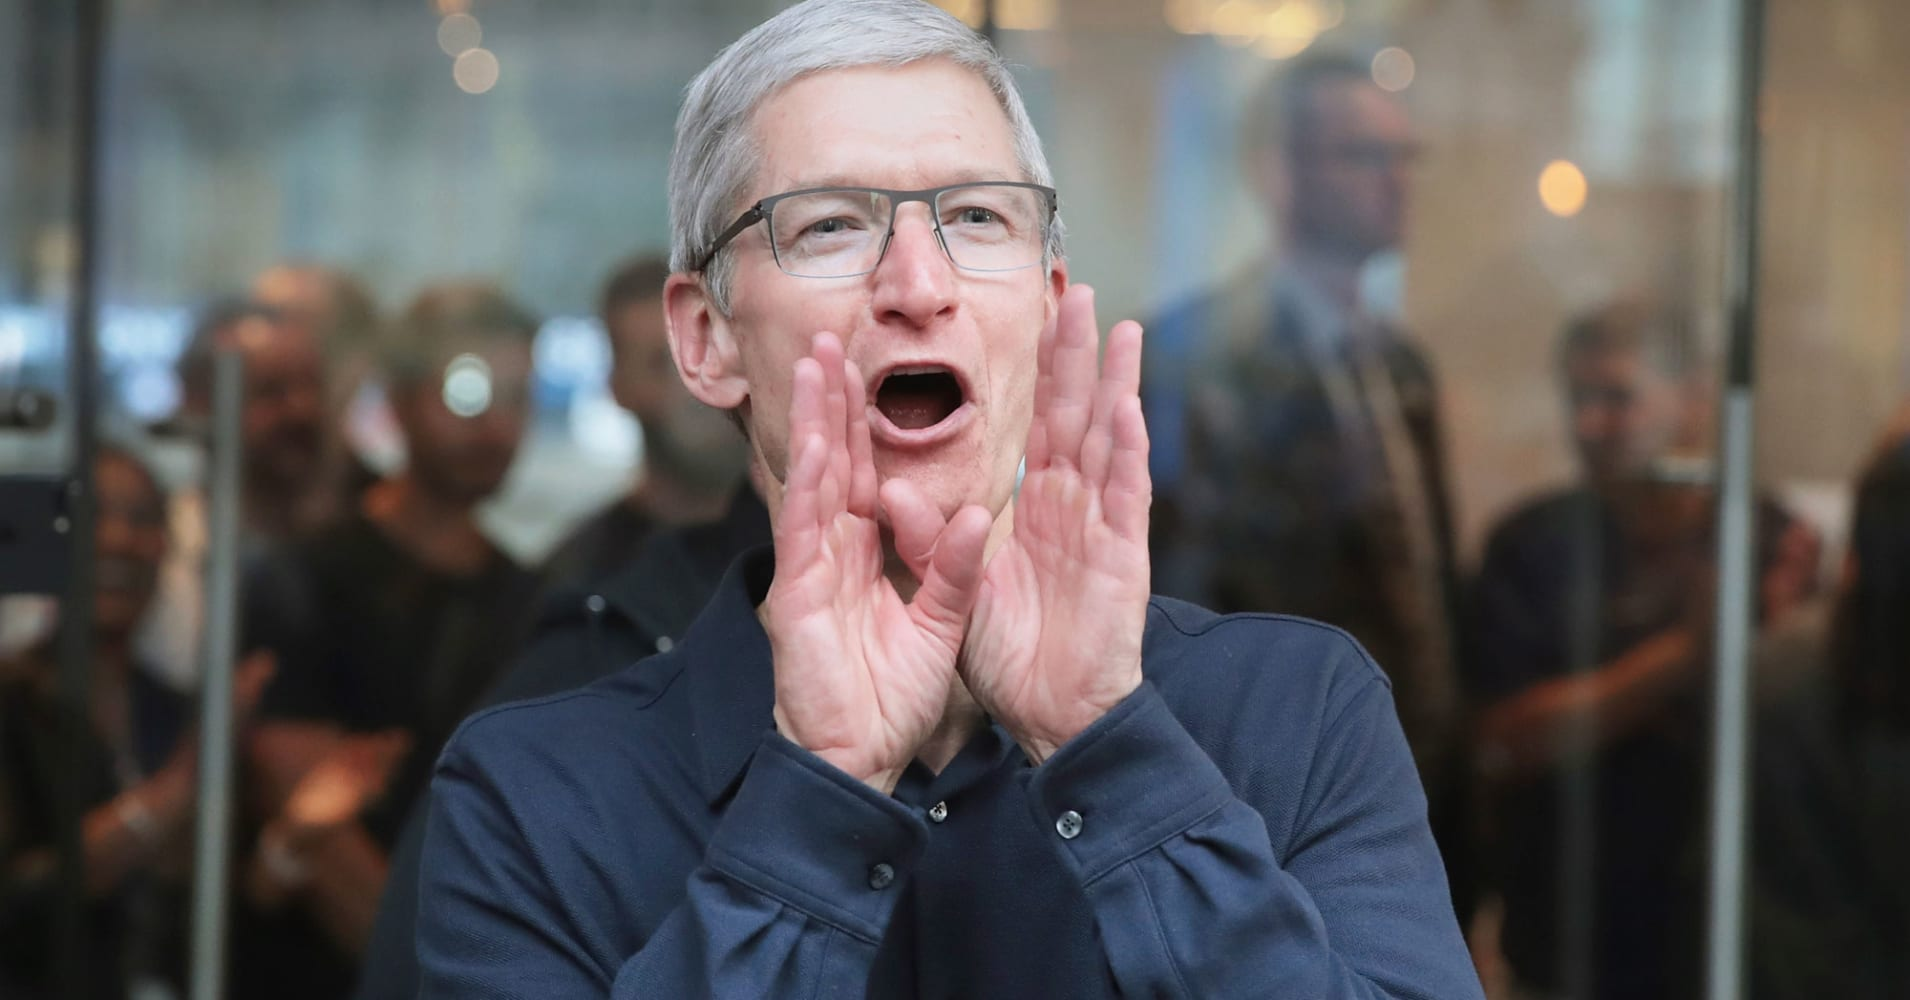 Apple's up 43,000 percent since its IPO, and could soon surpass $1 trillion in market cap